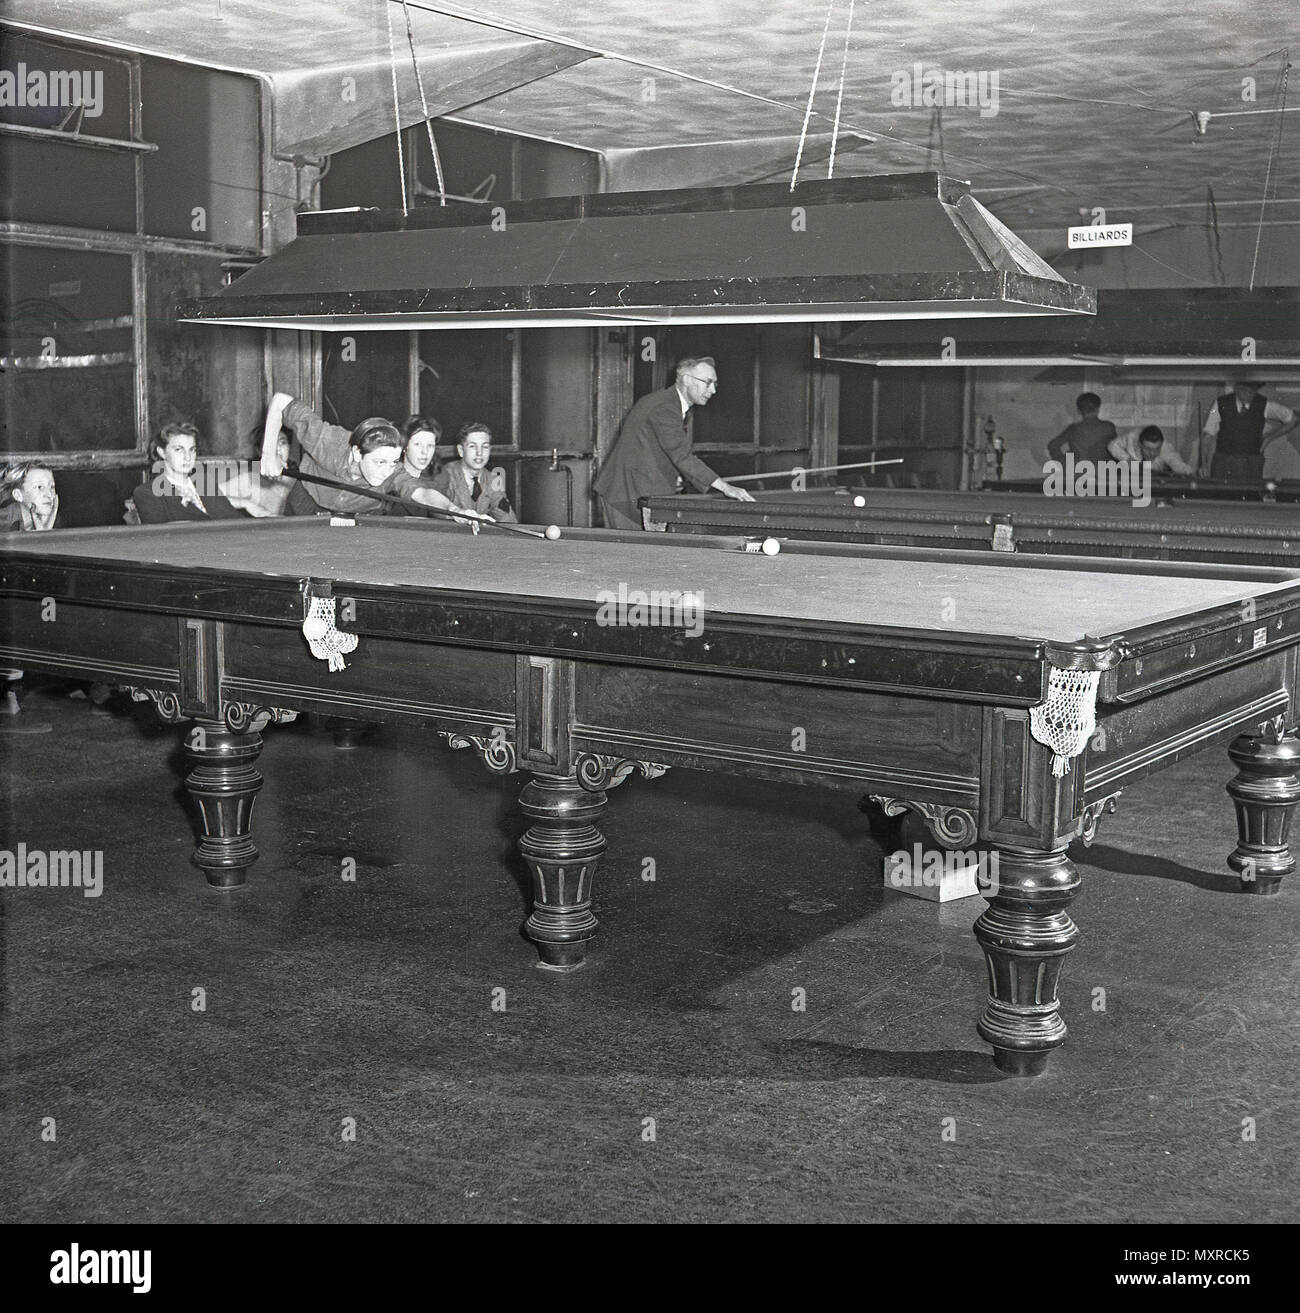 1948, historical, young people playing a game of billards or snooker in a snooker club, on a full-size table, England, UK. In this era, billards and/or snooker was a popular leisure activity but the pastime had limited appeal outside those who played it. Snooker, the so-called 'cue sport', originated among British Army officers stationed in India in the late 19th century. - Stock Image